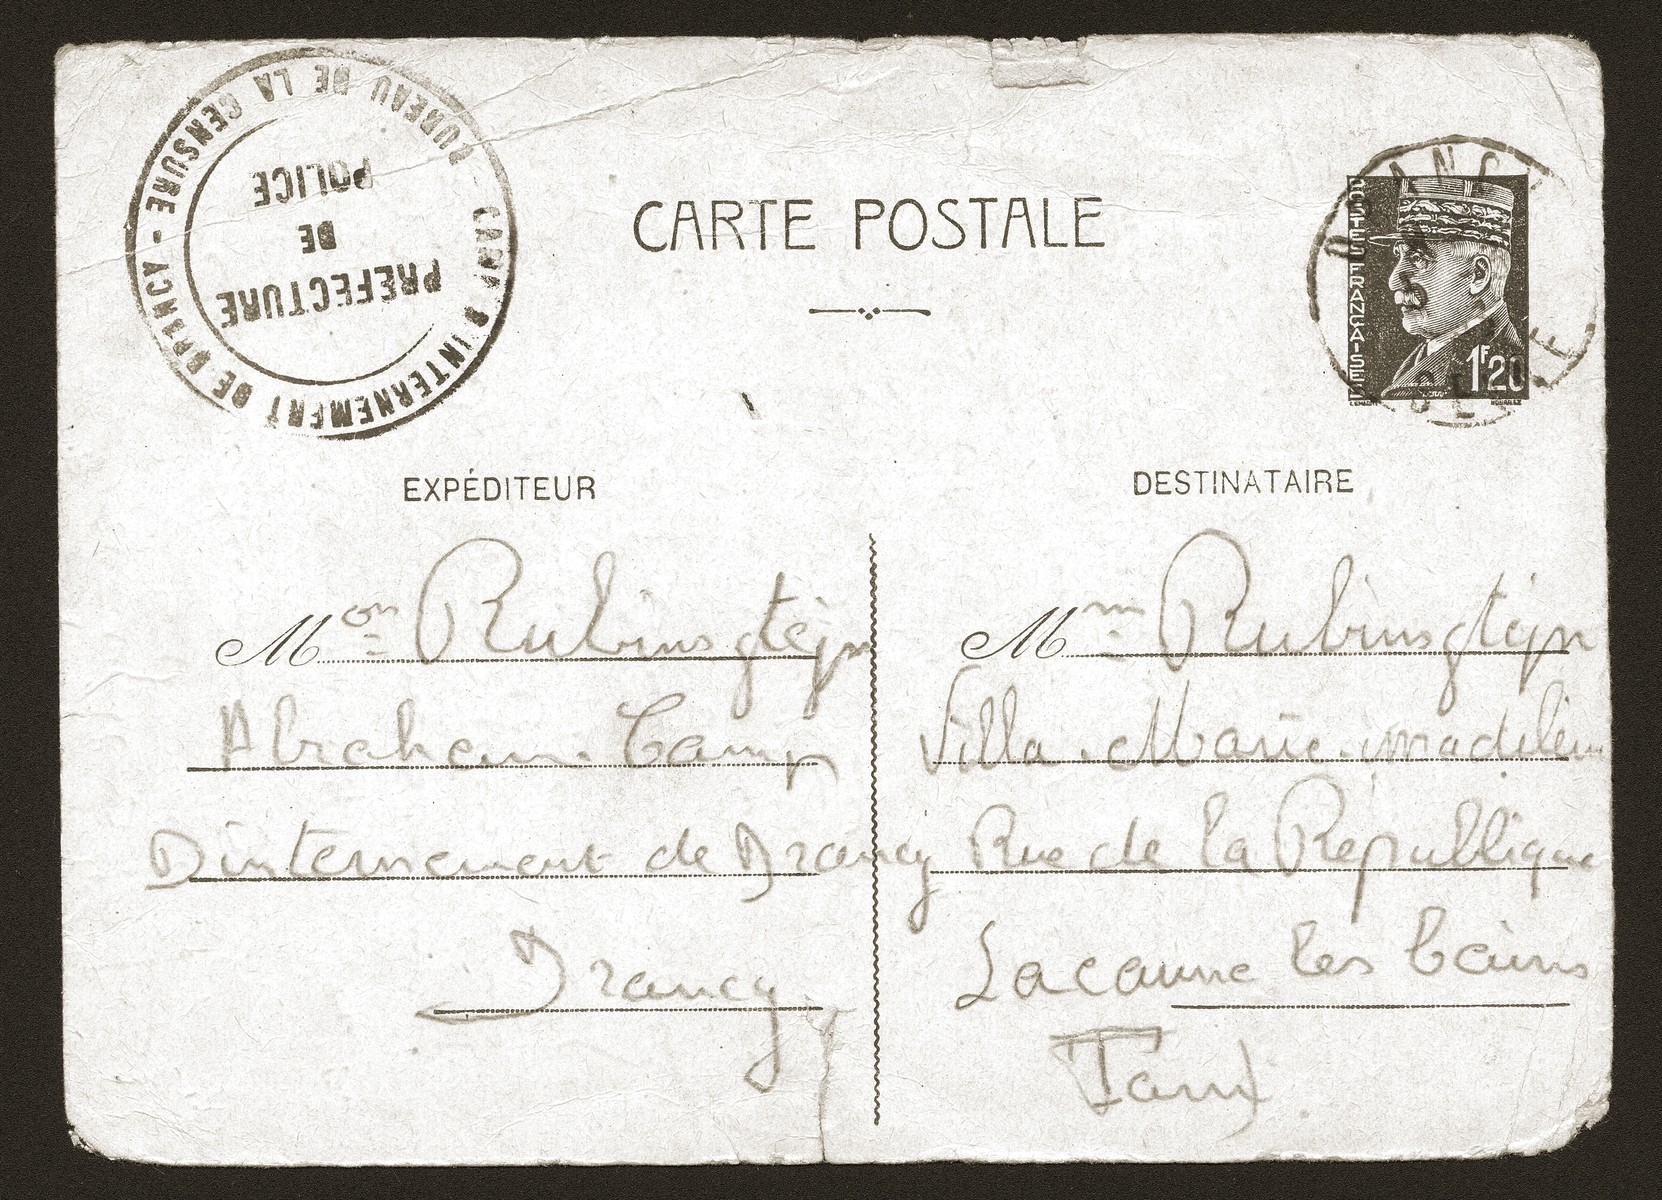 Postcard sent to the Rubinsztejn family by Armand Rubinsztejn during his internment at Drancy.